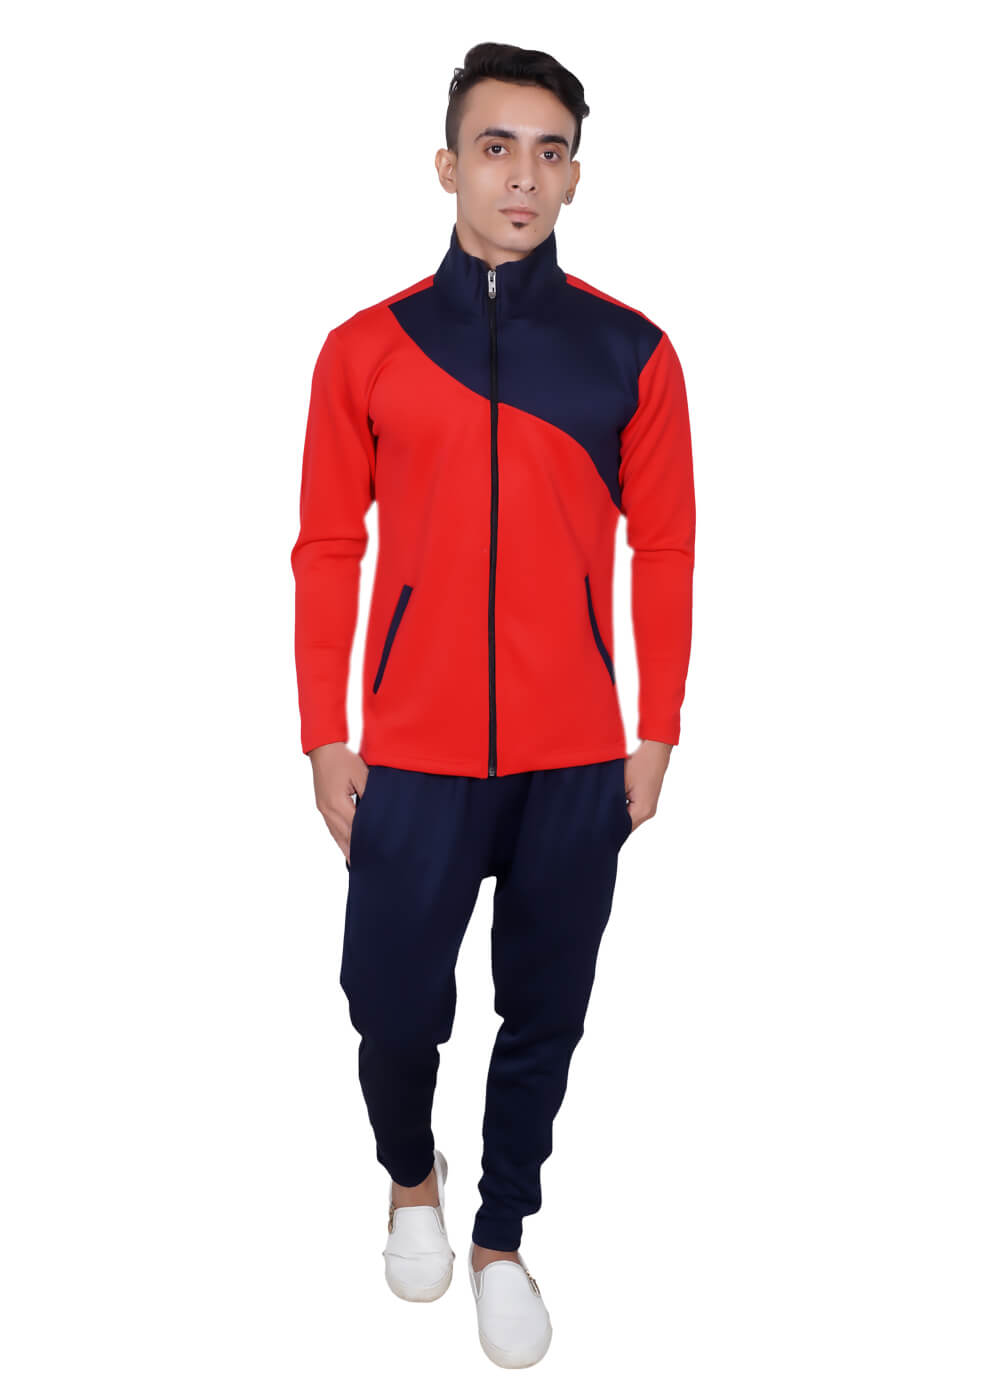 Cheap Tracksuits Manufacturers in Argentina